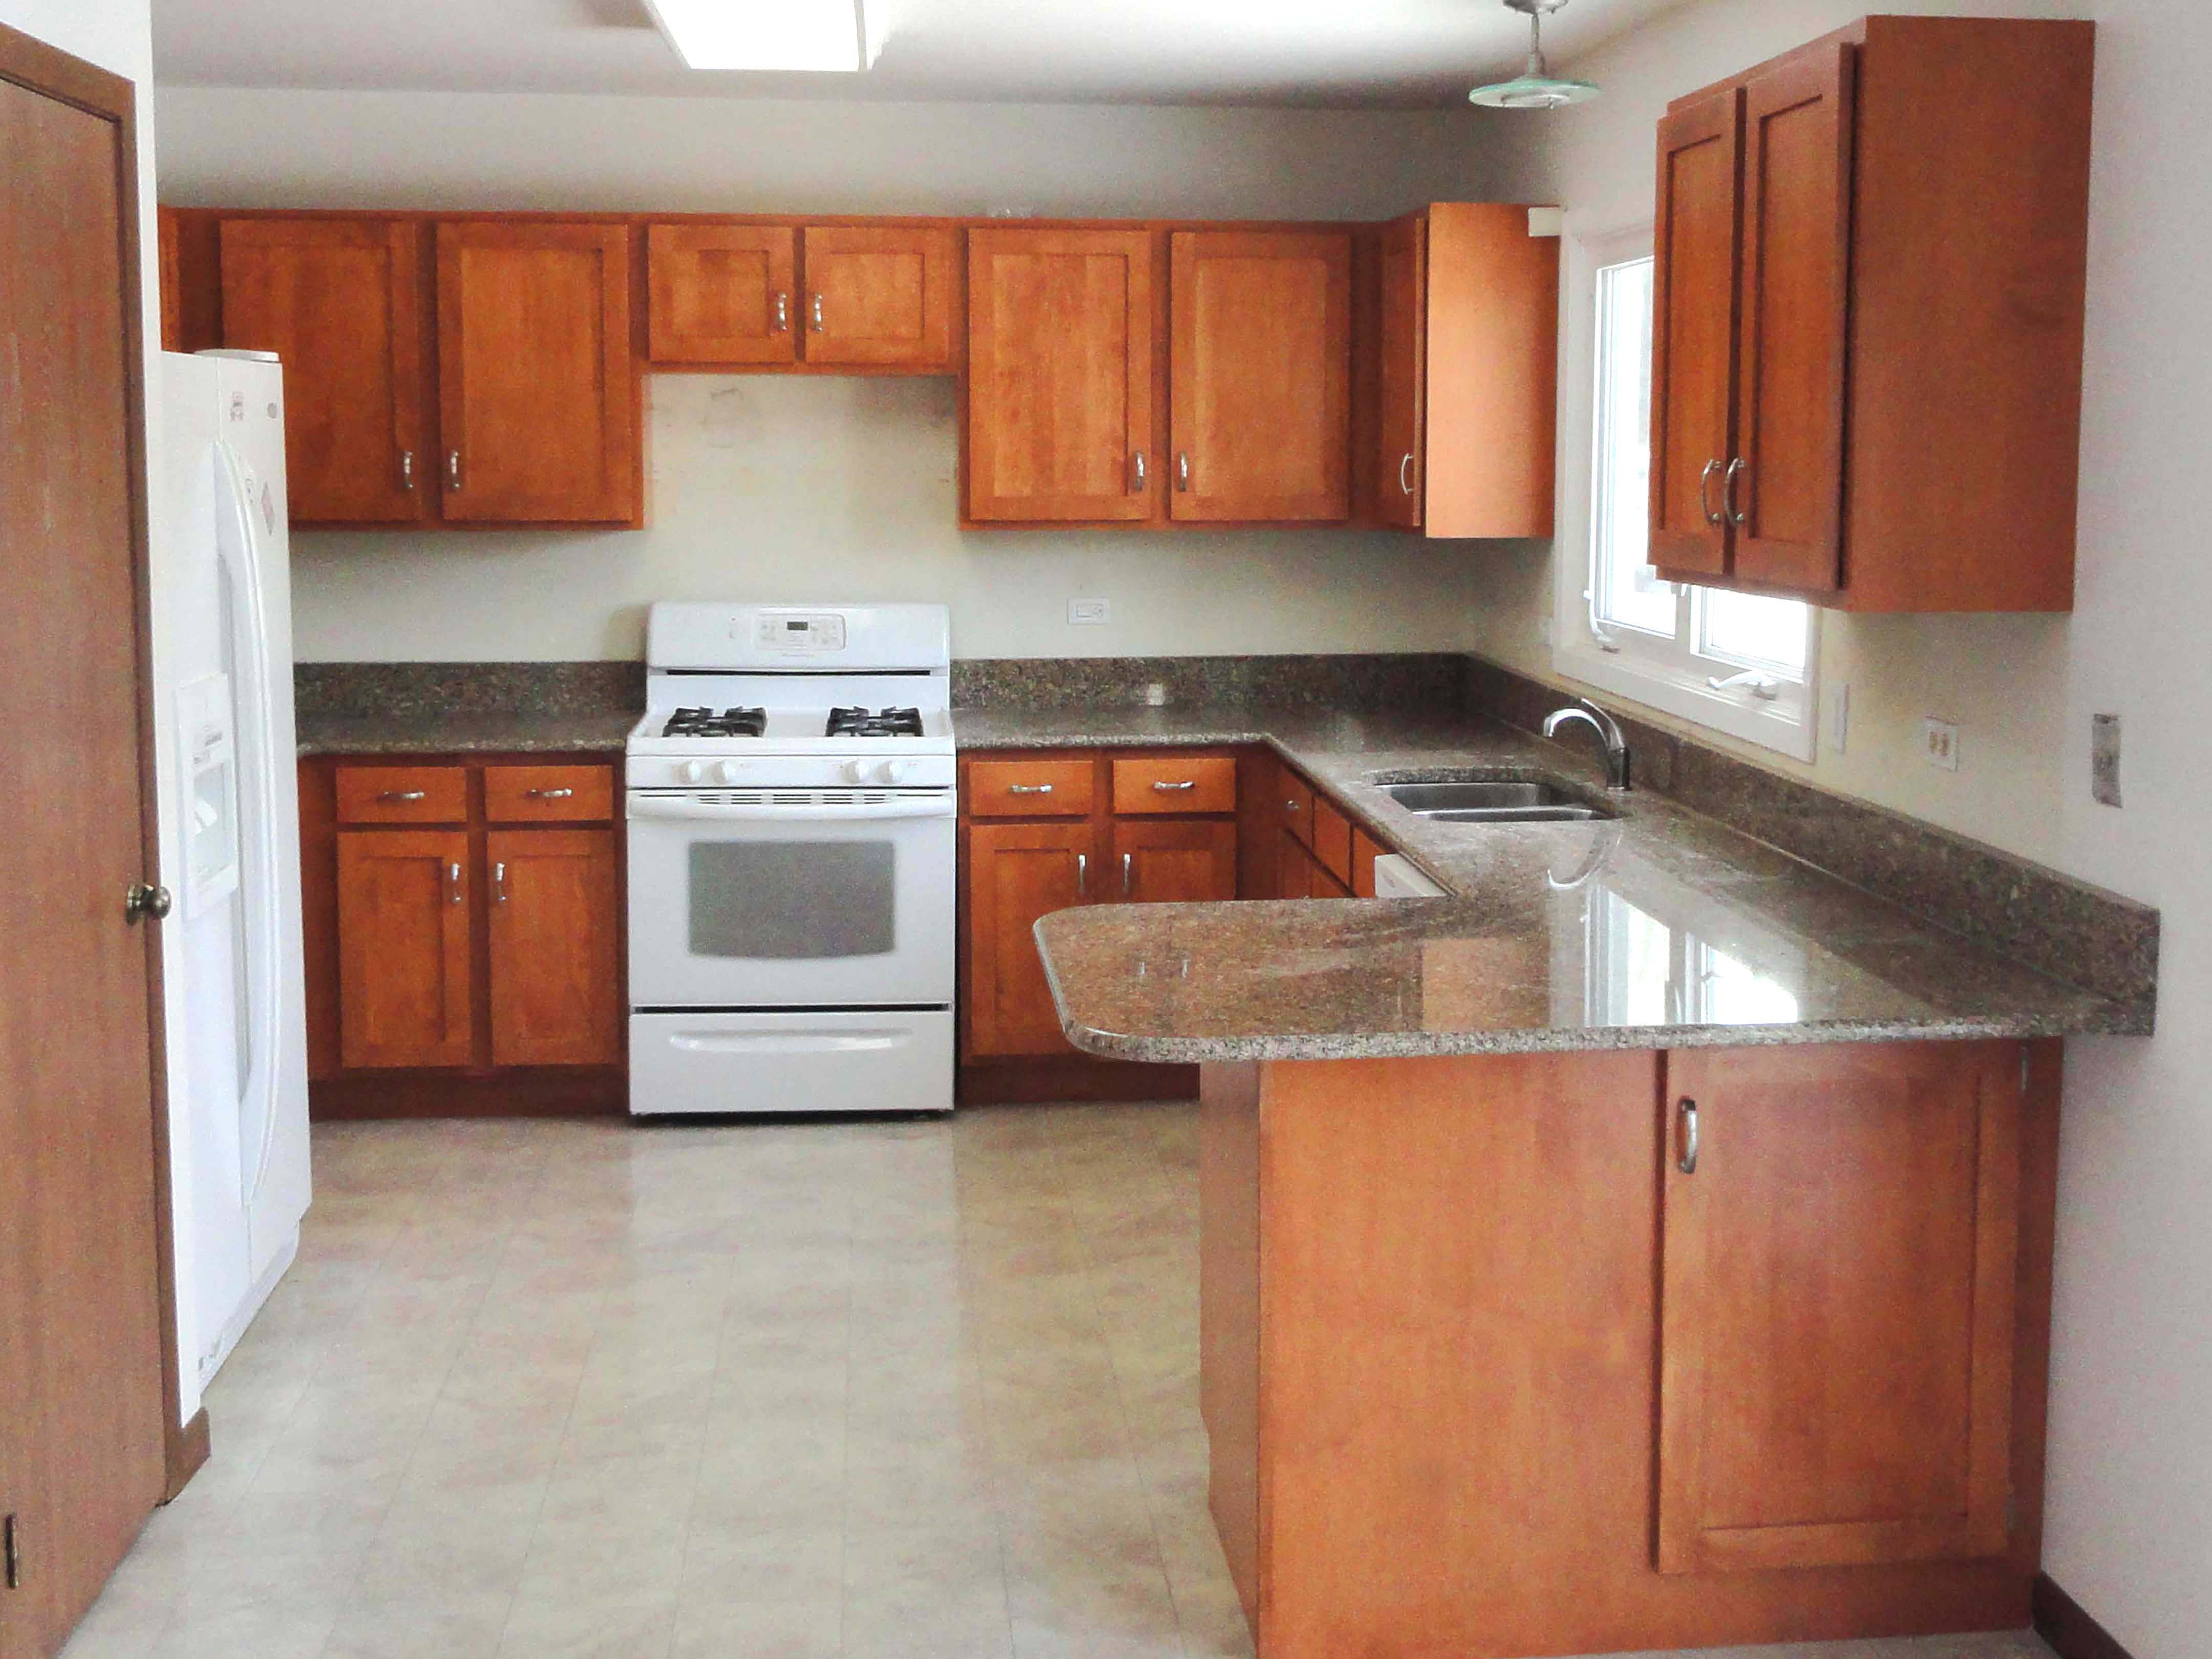 thomasville kitchen cabinets aid sale specifications home decor